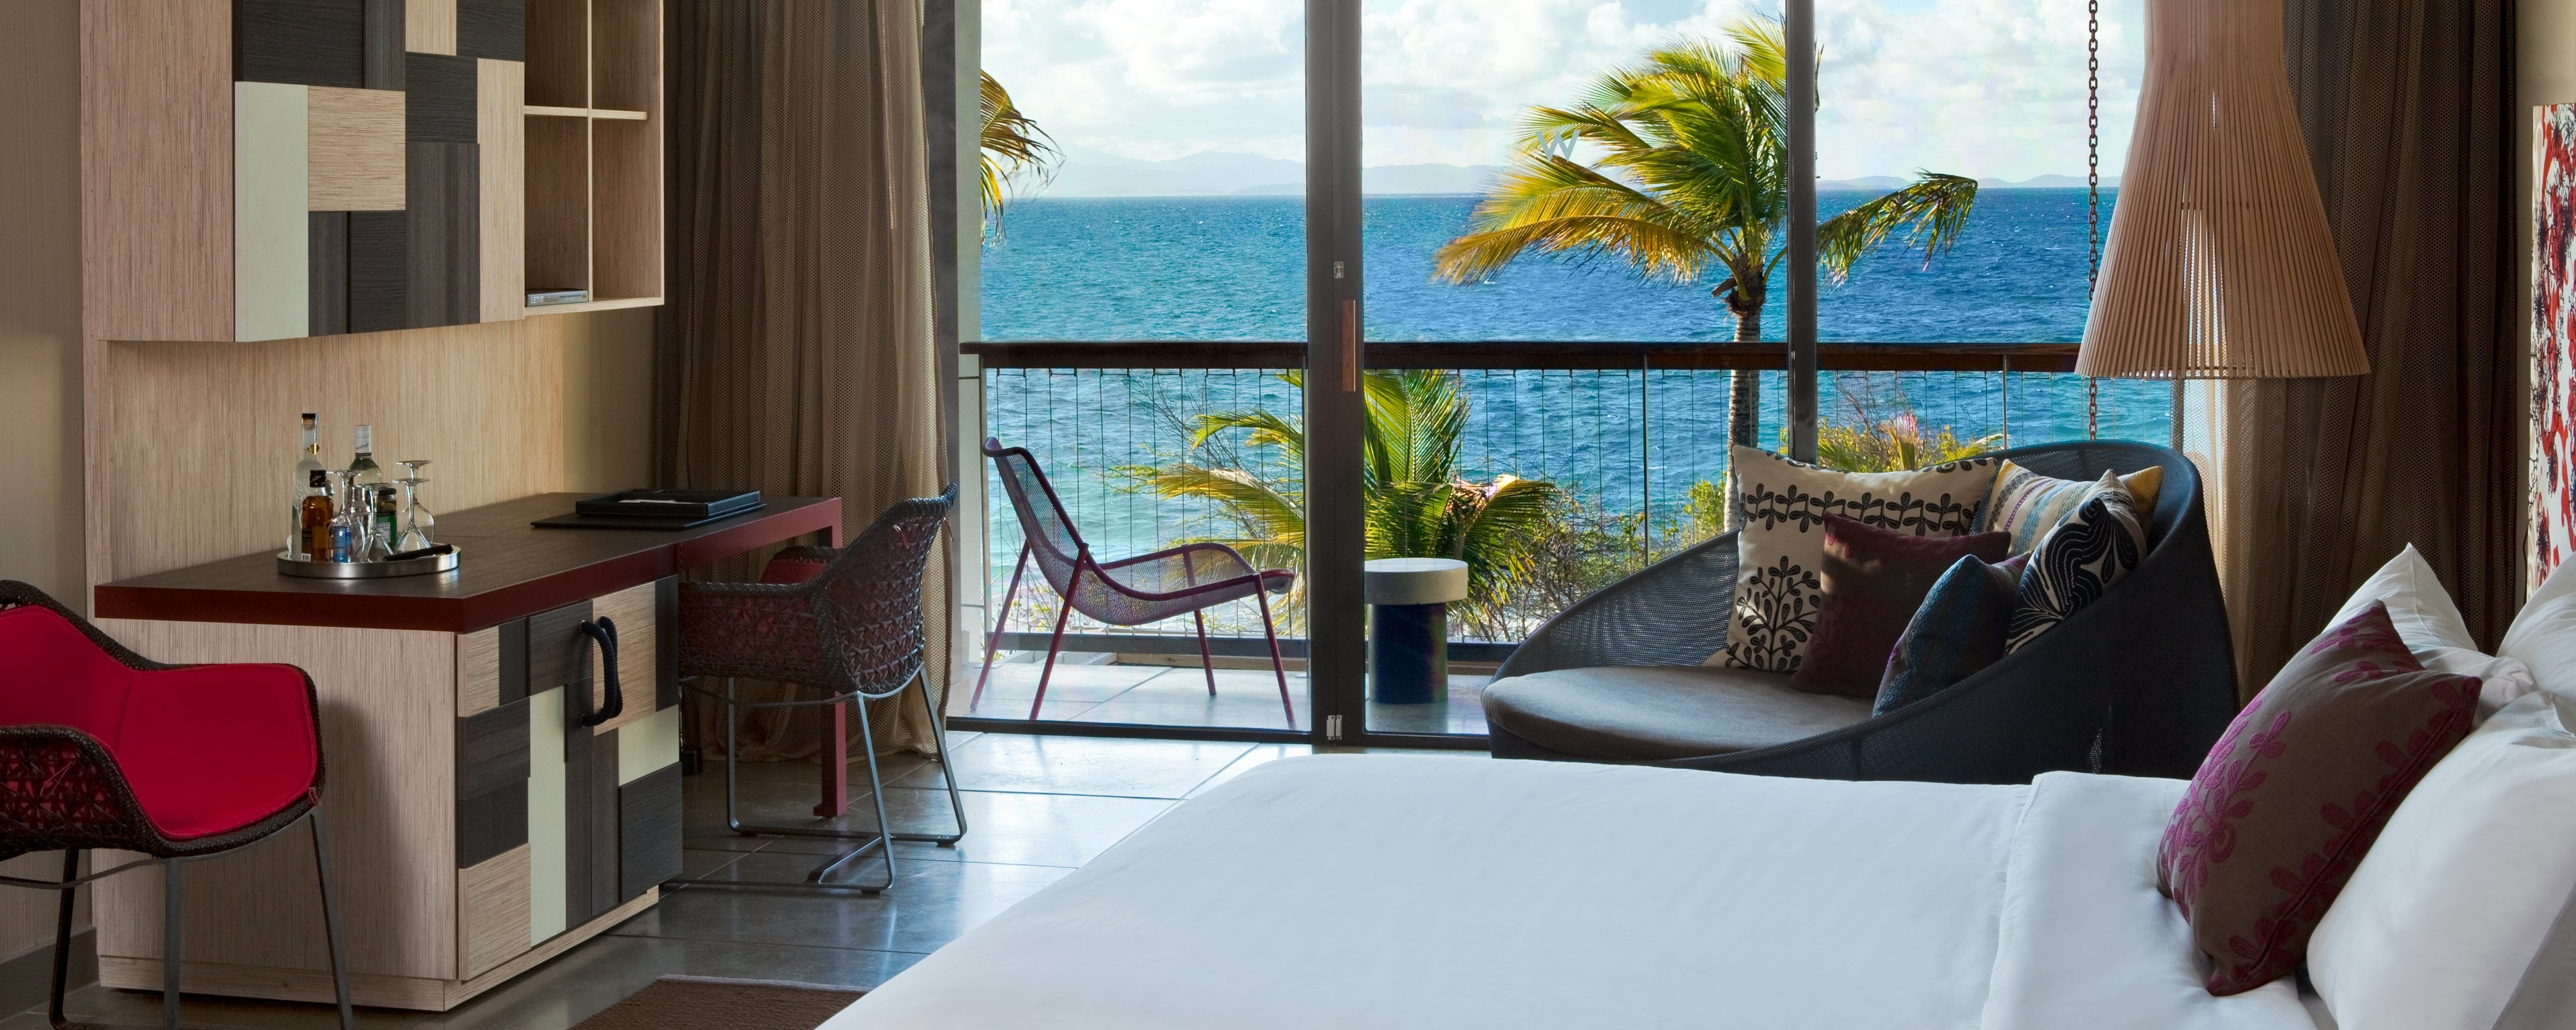 Fabulous Room - ocean front View